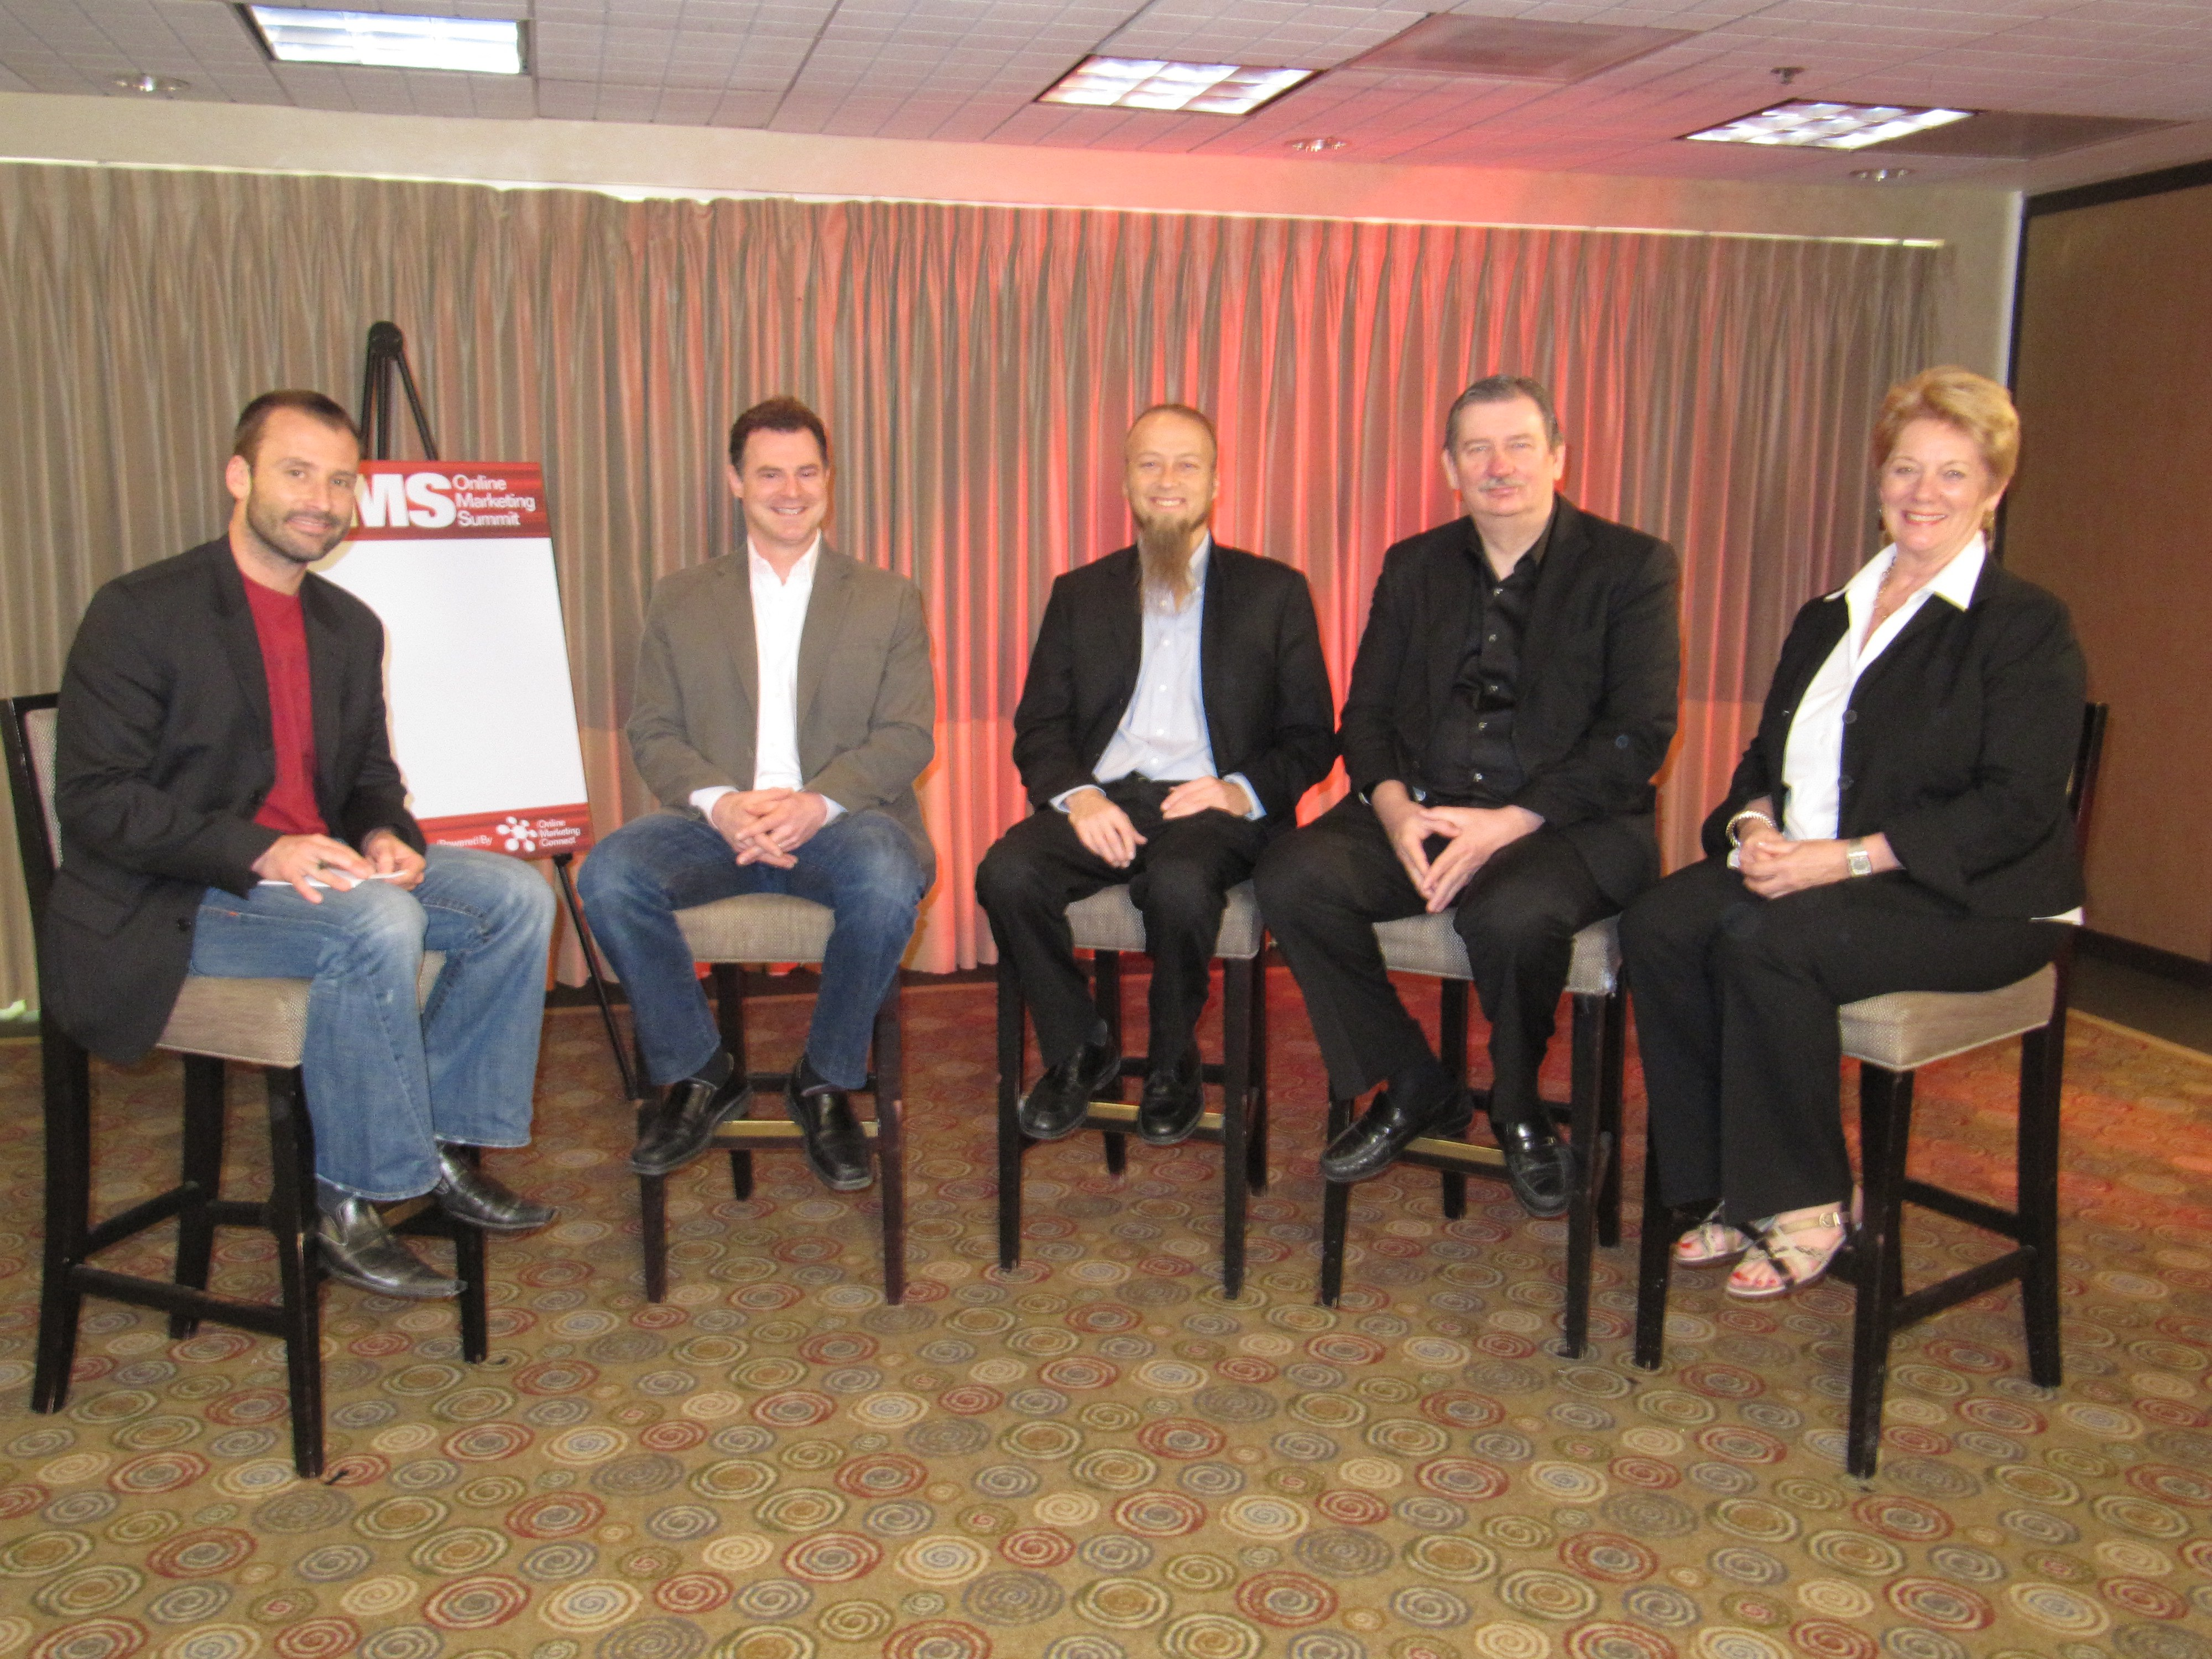 Internet Marketing Expert Aaron Kahlow and Colleagues